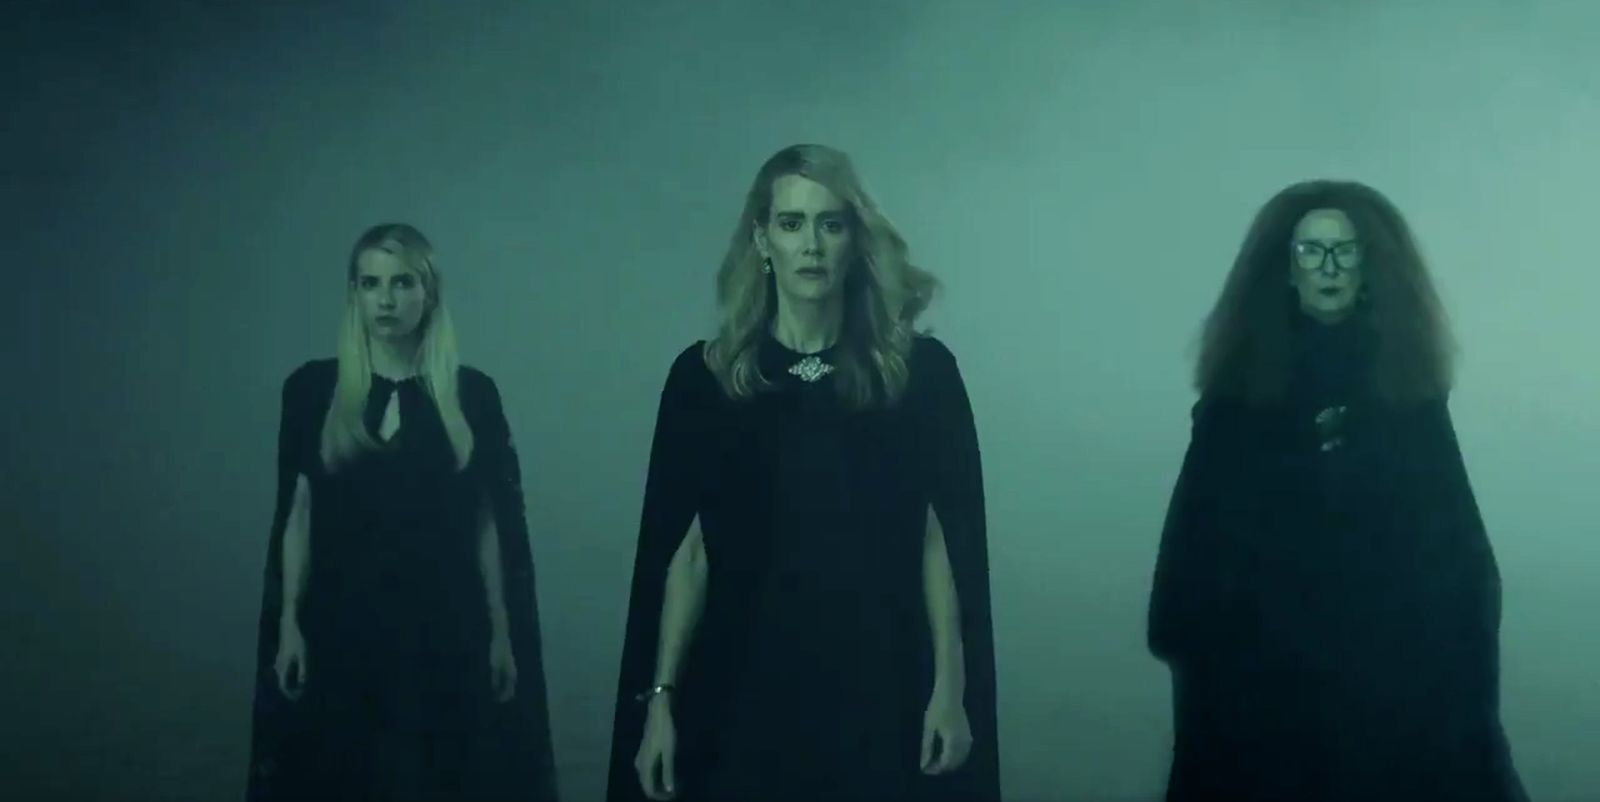 The First Footage From 'AHS: Apocalypse' Just Dropped and I'm Shaking #ahsapocalypse The First Footage From 'AHS: Apocalypse' Just Dropped and I'm Shaking #ahsapocalypse The First Footage From 'AHS: Apocalypse' Just Dropped and I'm Shaking #ahsapocalypse The First Footage From 'AHS: Apocalypse' Just Dropped and I'm Shaking #ahsapocalypse The First Footage From 'AHS: Apocalypse' Just Dropped and I'm Shaking #ahsapocalypse The First Footage From 'AHS: Apocalypse' Just Dropped and I'm Shaking #ahsa #ahsapocalypse